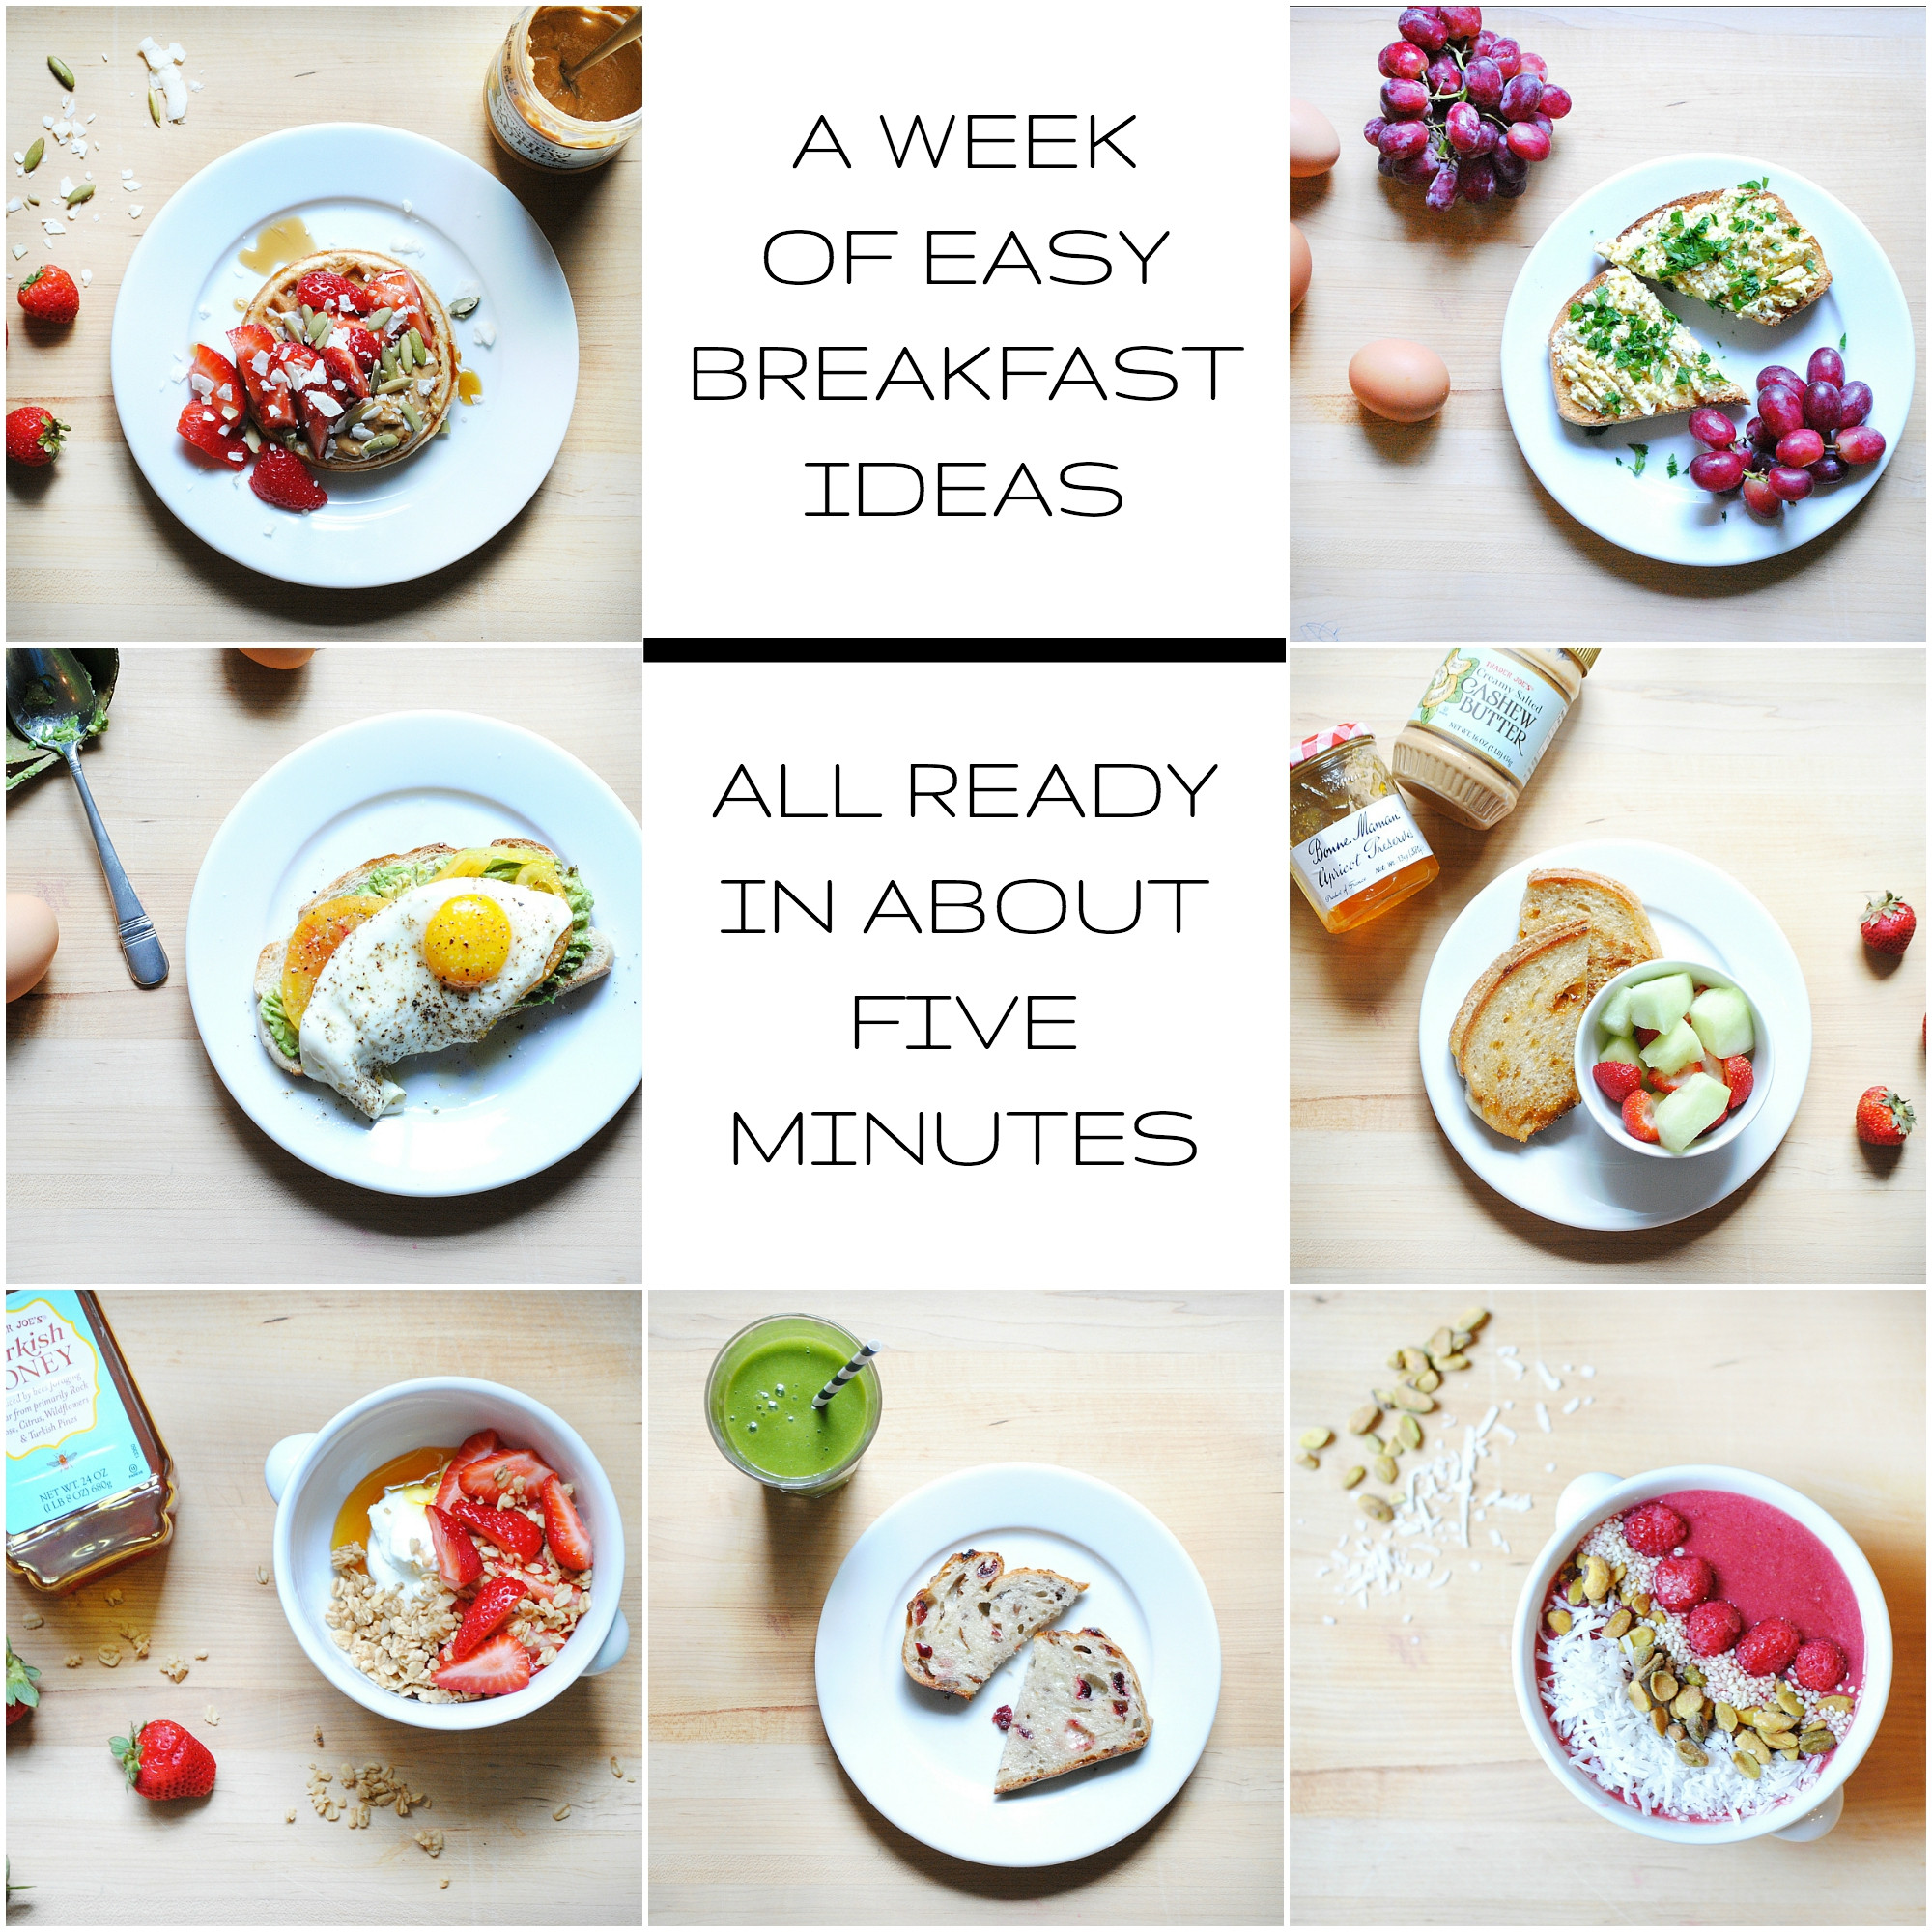 Easy Healthy Breakfast Recipes  A Week of Healthy Easy Breakfast Ideas All Ready in